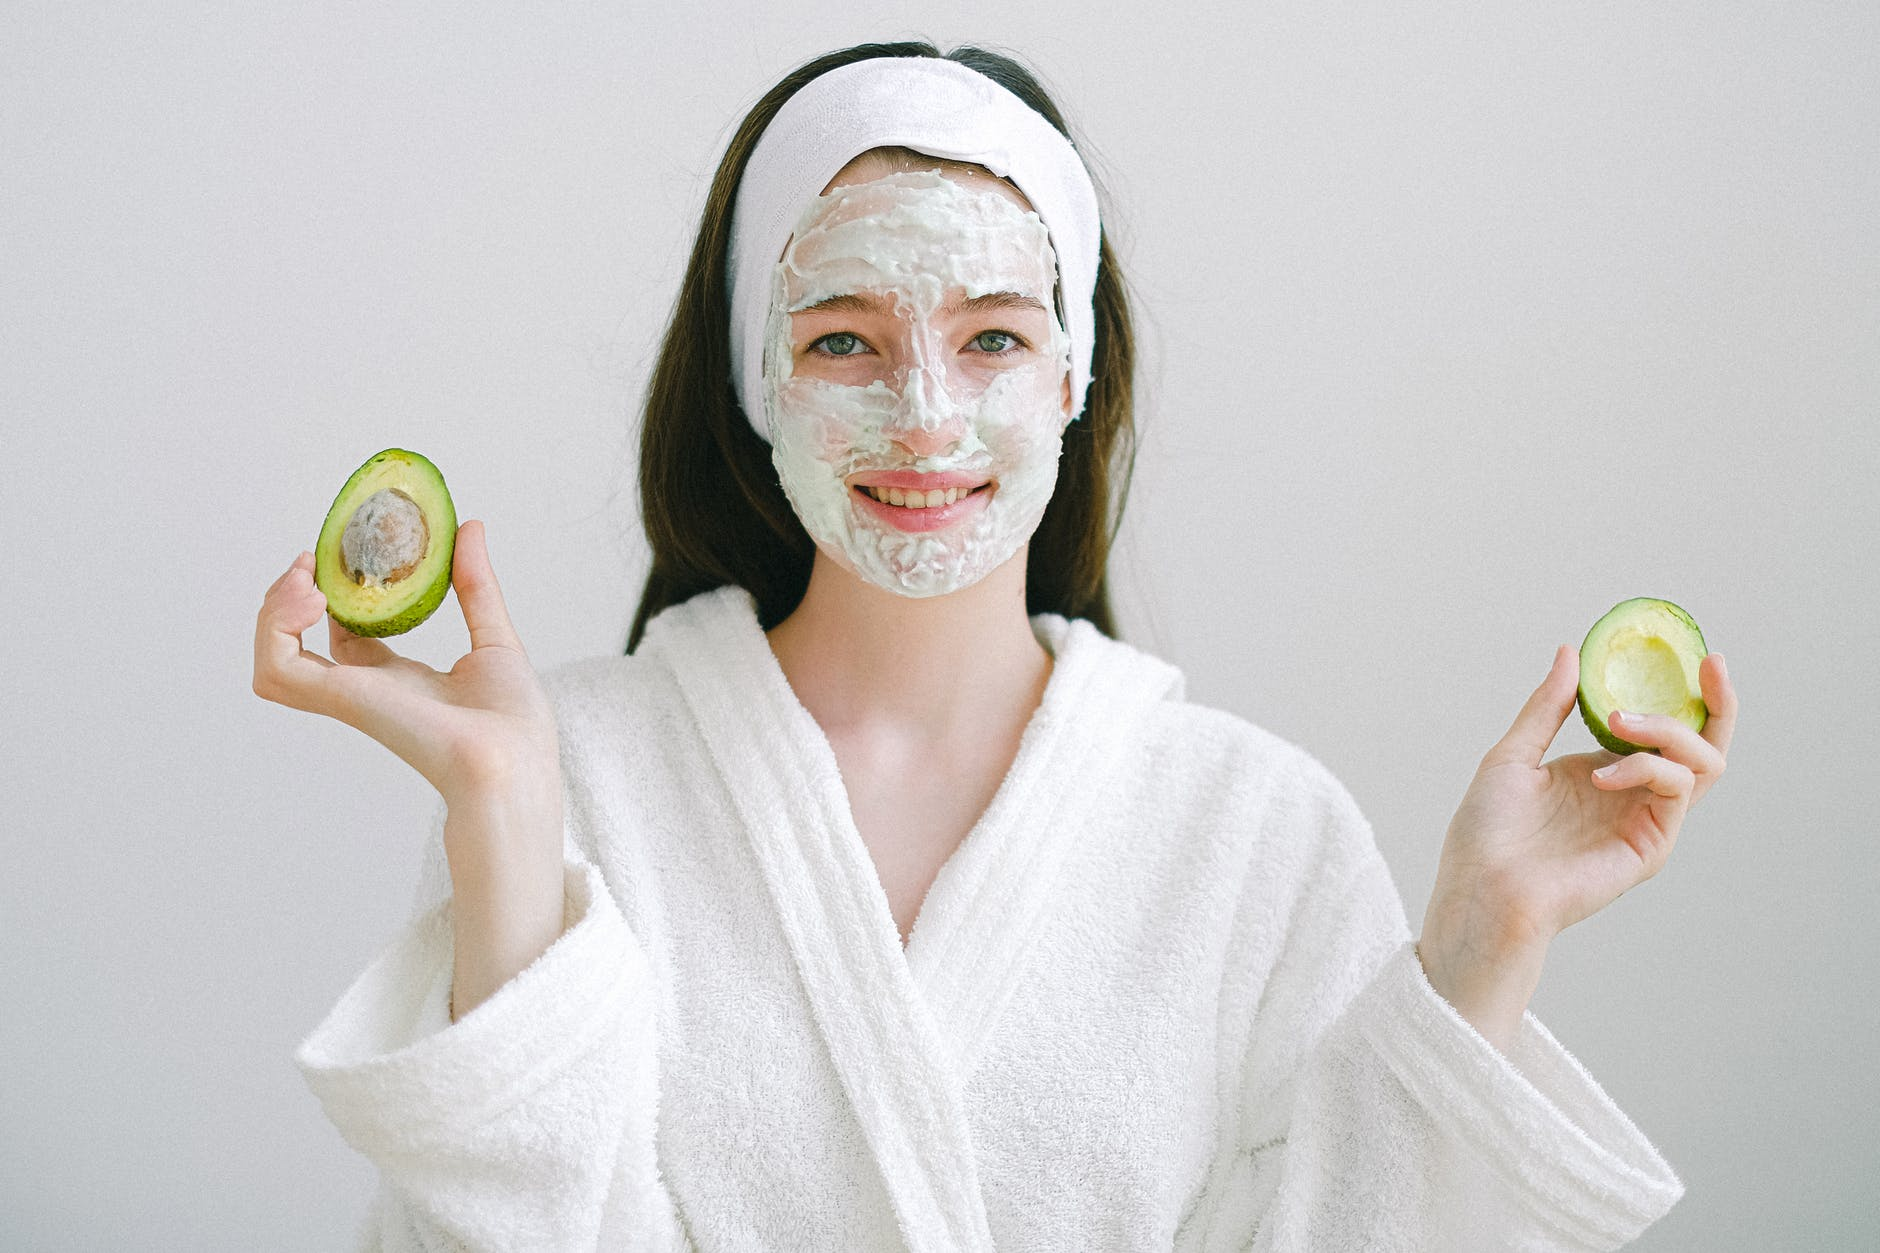 Woman wears a self-care homemade face mask and holds an avocado.